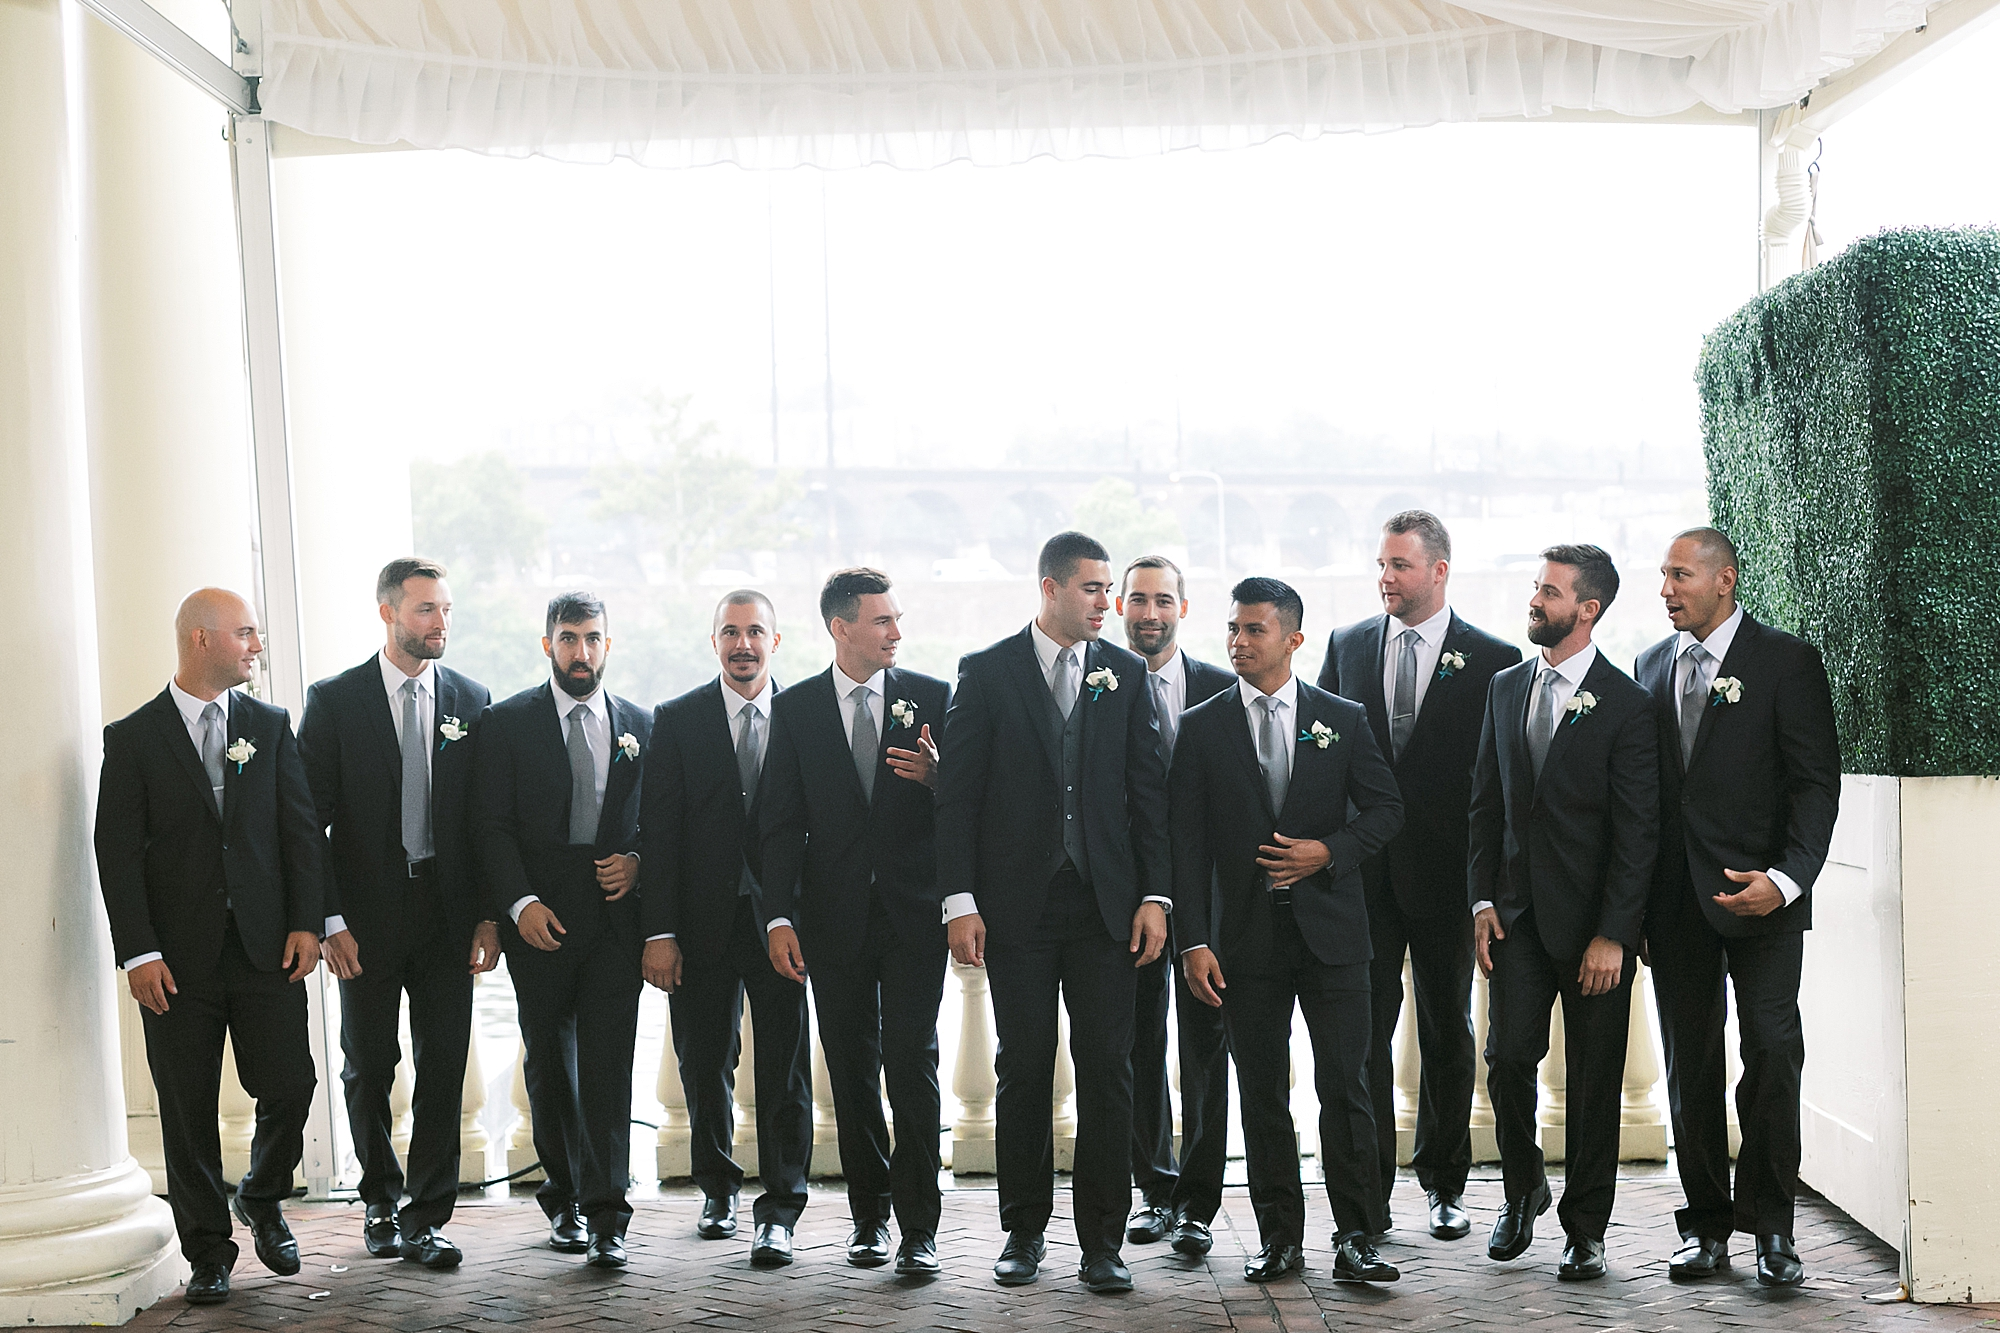 Genuine and Natural Philadelphia Wedding Photography by Magdalena Studios 0030